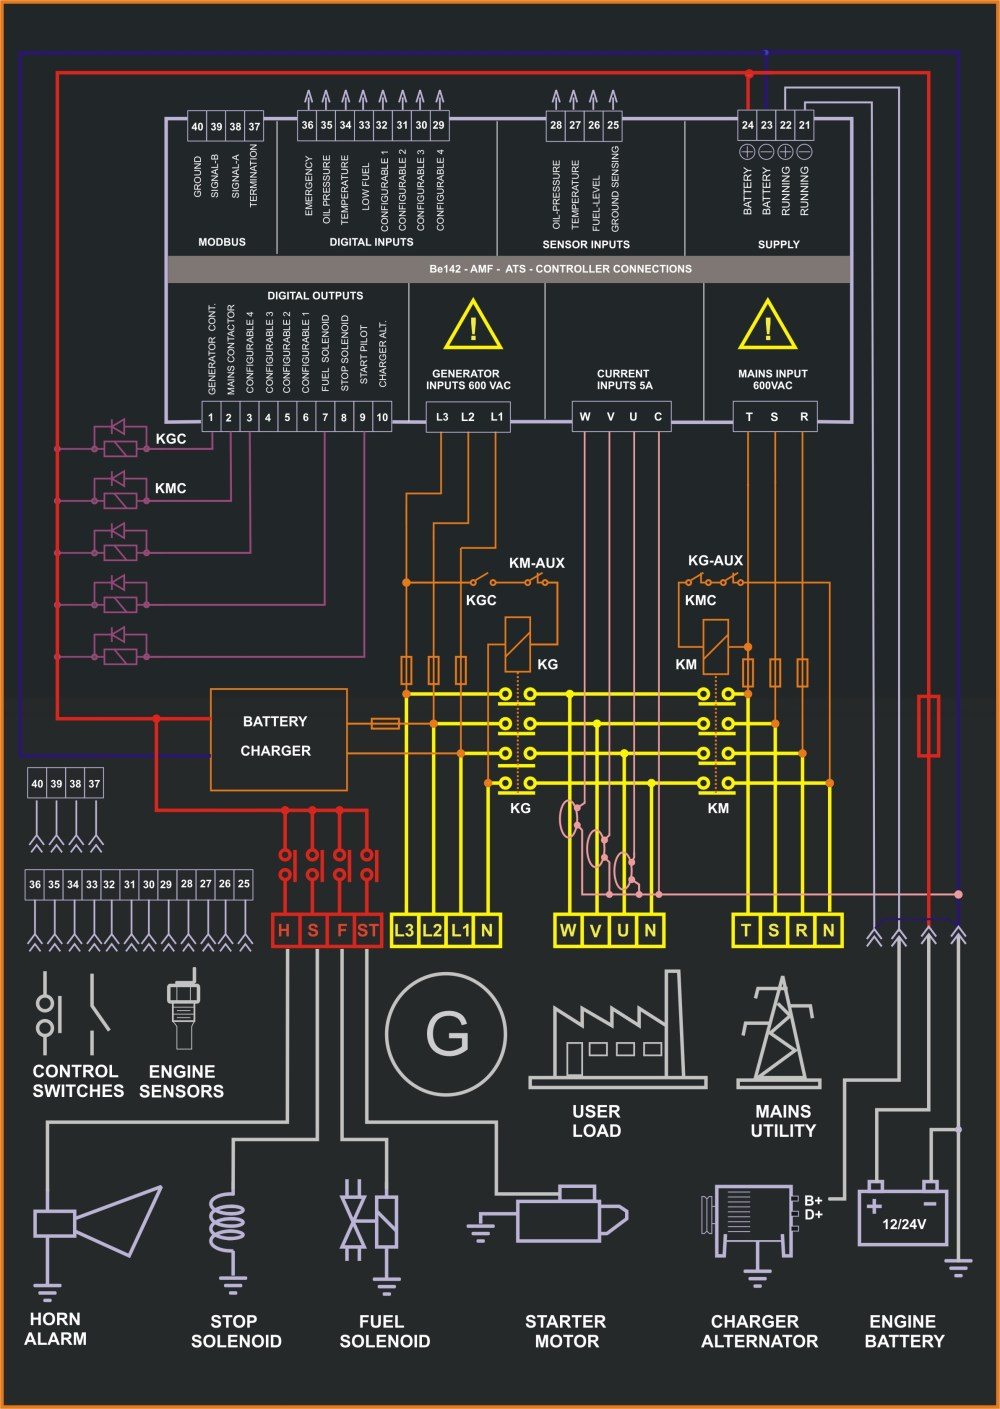 medium resolution of wiring diagram of panel wiring diagram megafigure 41 control panel circuit schematic diagram wiring diagram wiring